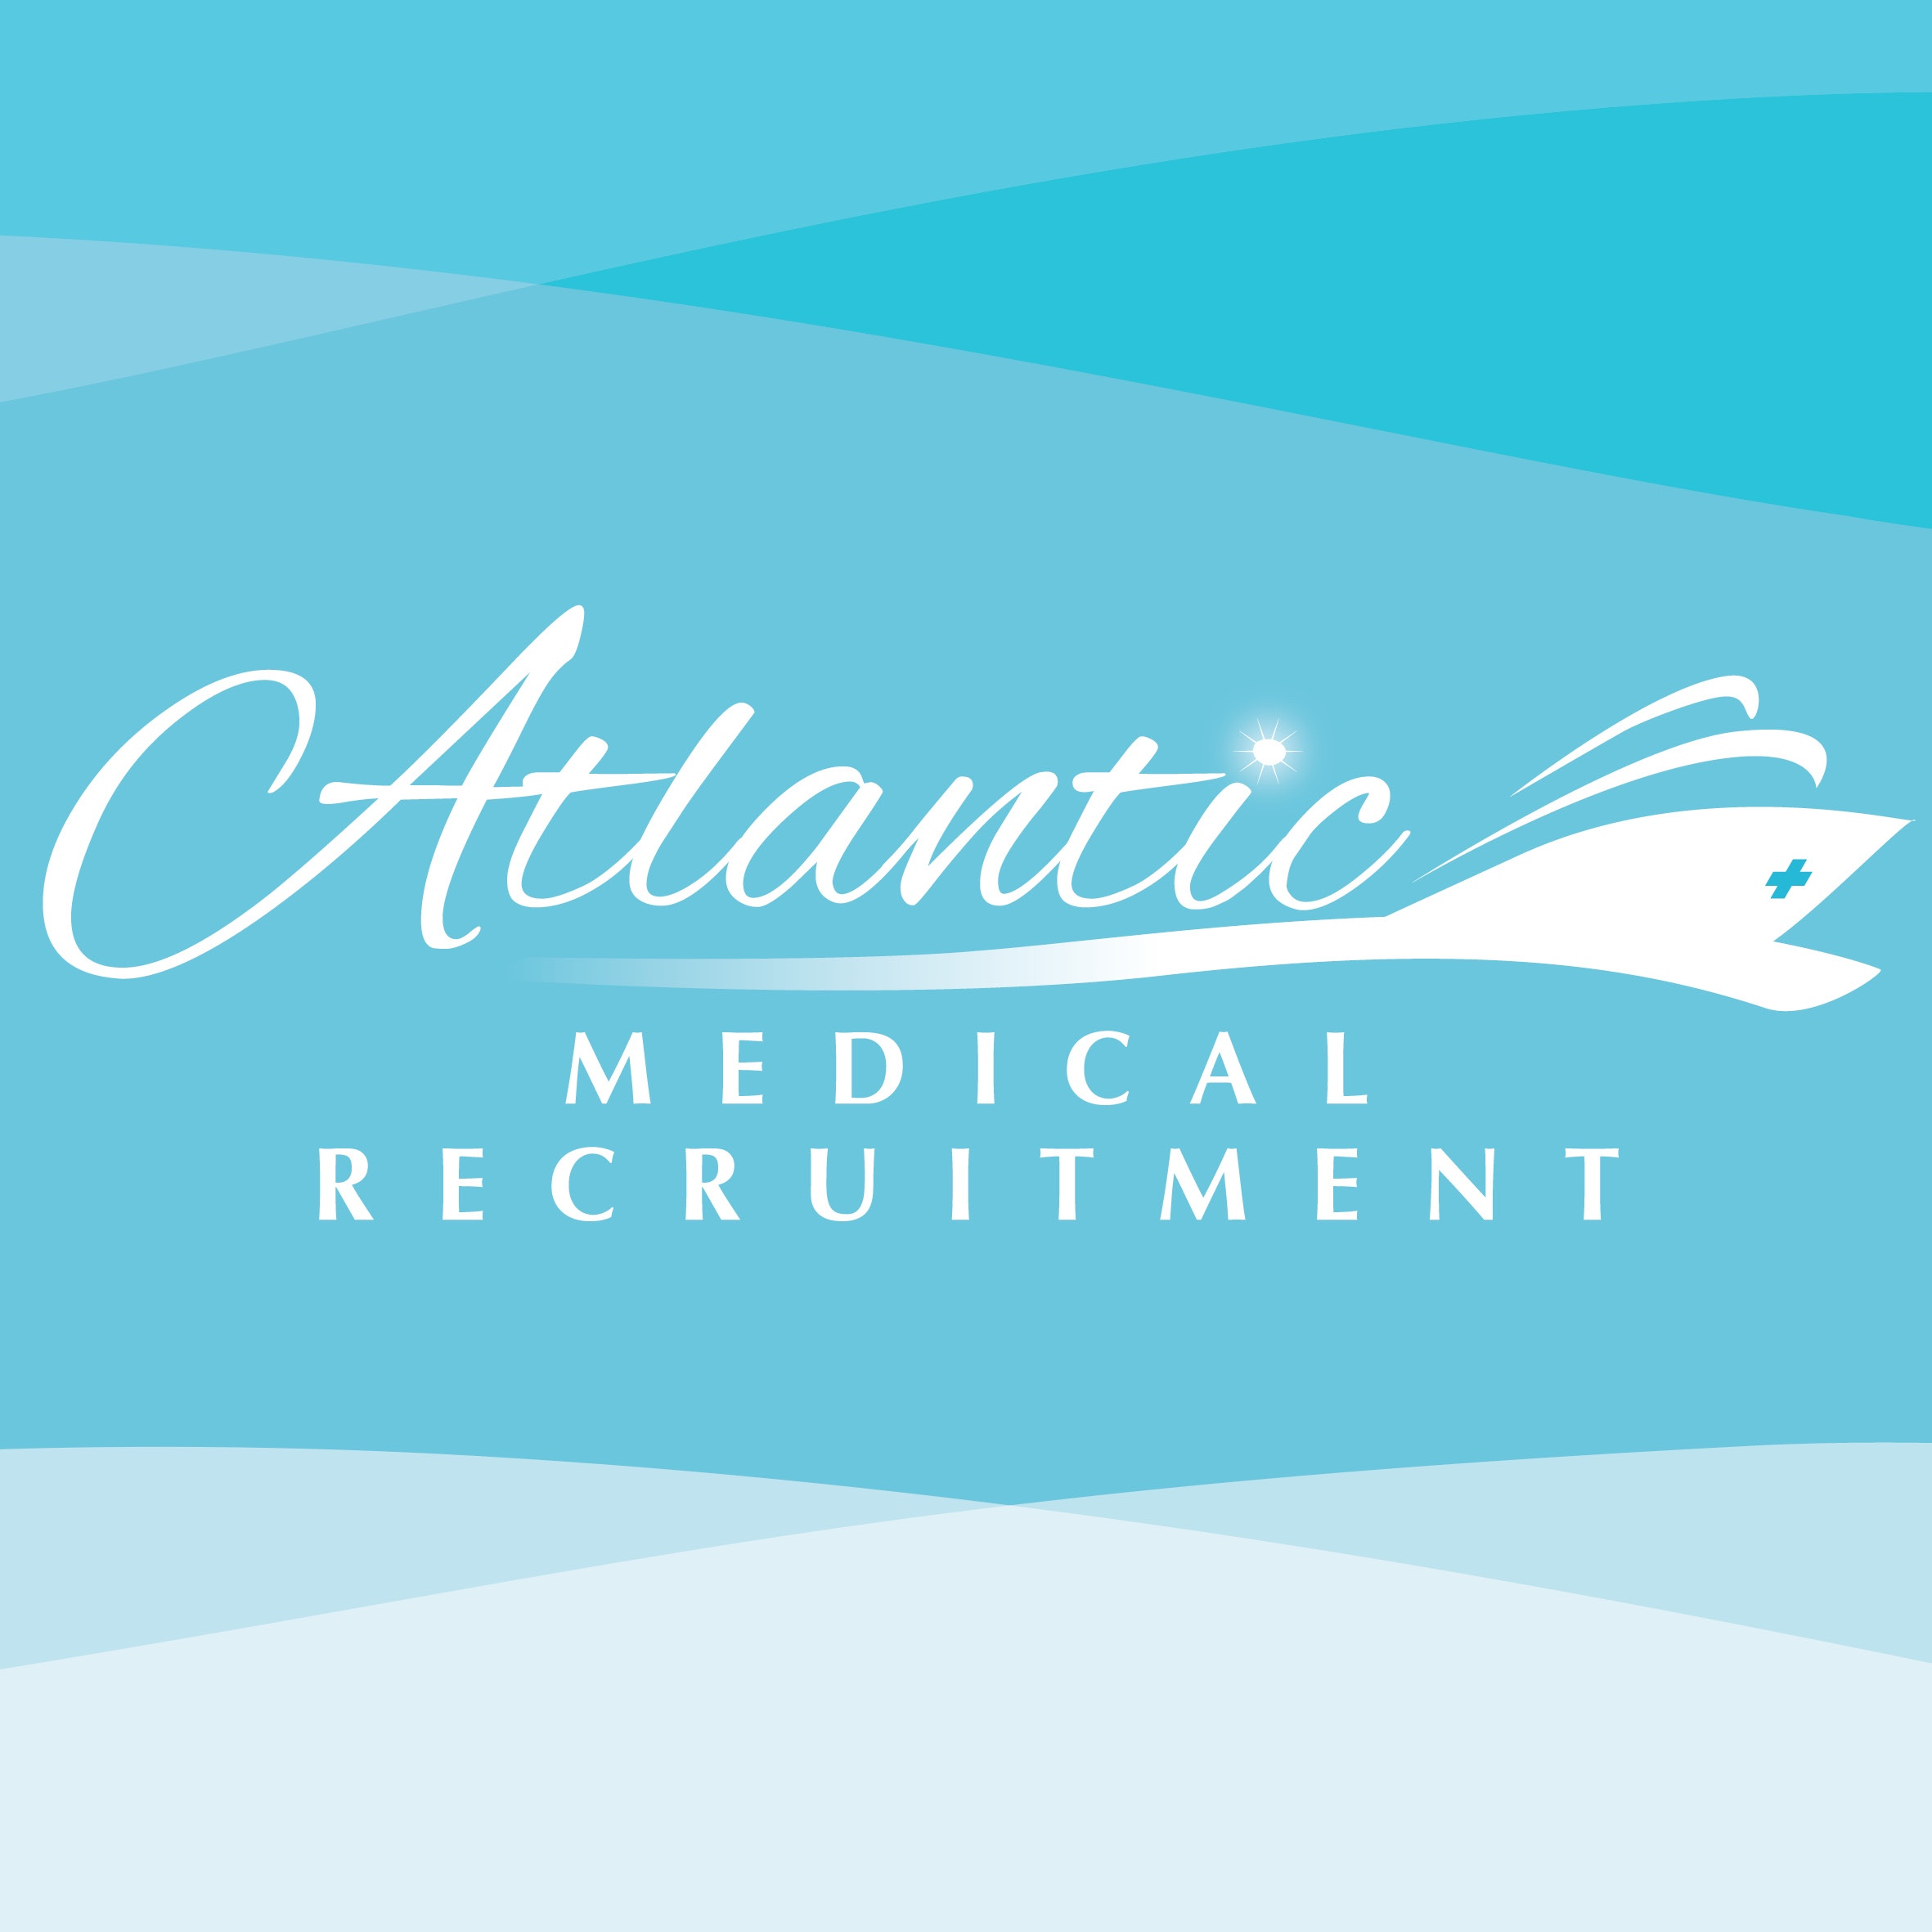 Atlantic Medical Recruitment